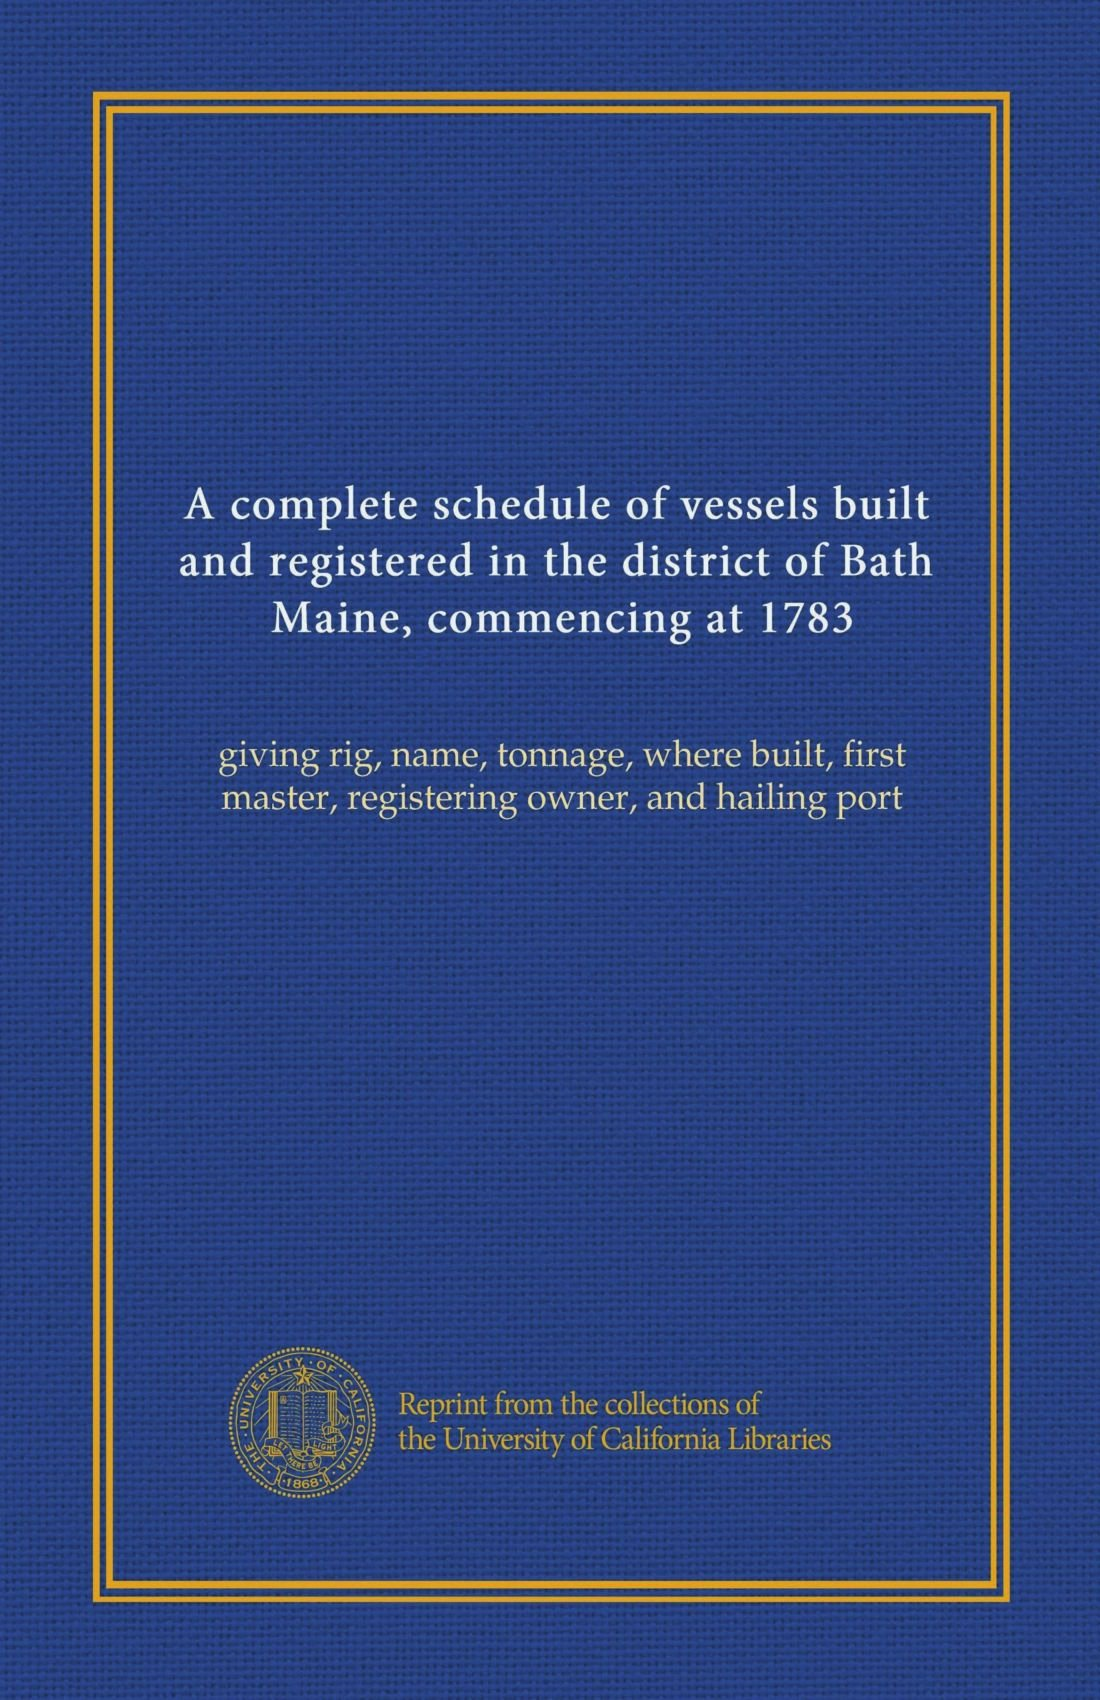 A complete schedule of vessels built and registered in the district of Bath, Maine, commencing at 1783: giving rig, name, tonnage, where built, first master, registering owner, and hailing port pdf